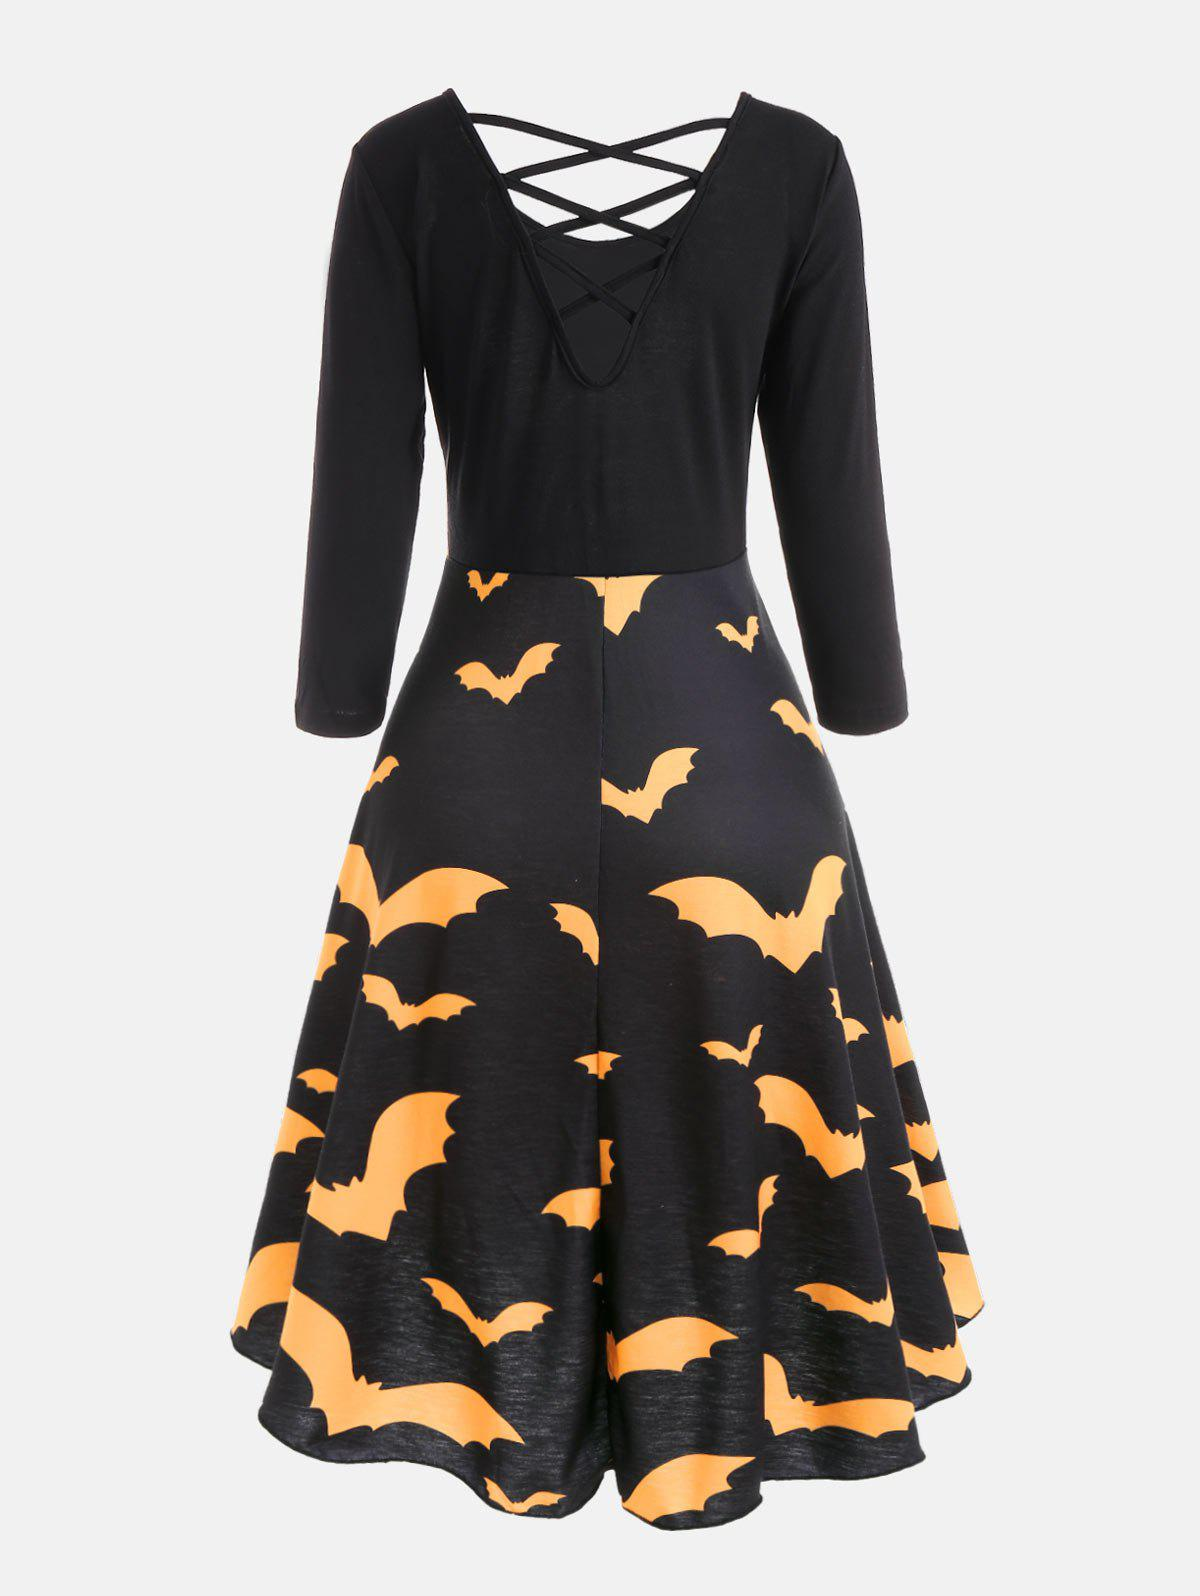 Cross Back Bat Print Fit and Flare Dress - YELLOW S